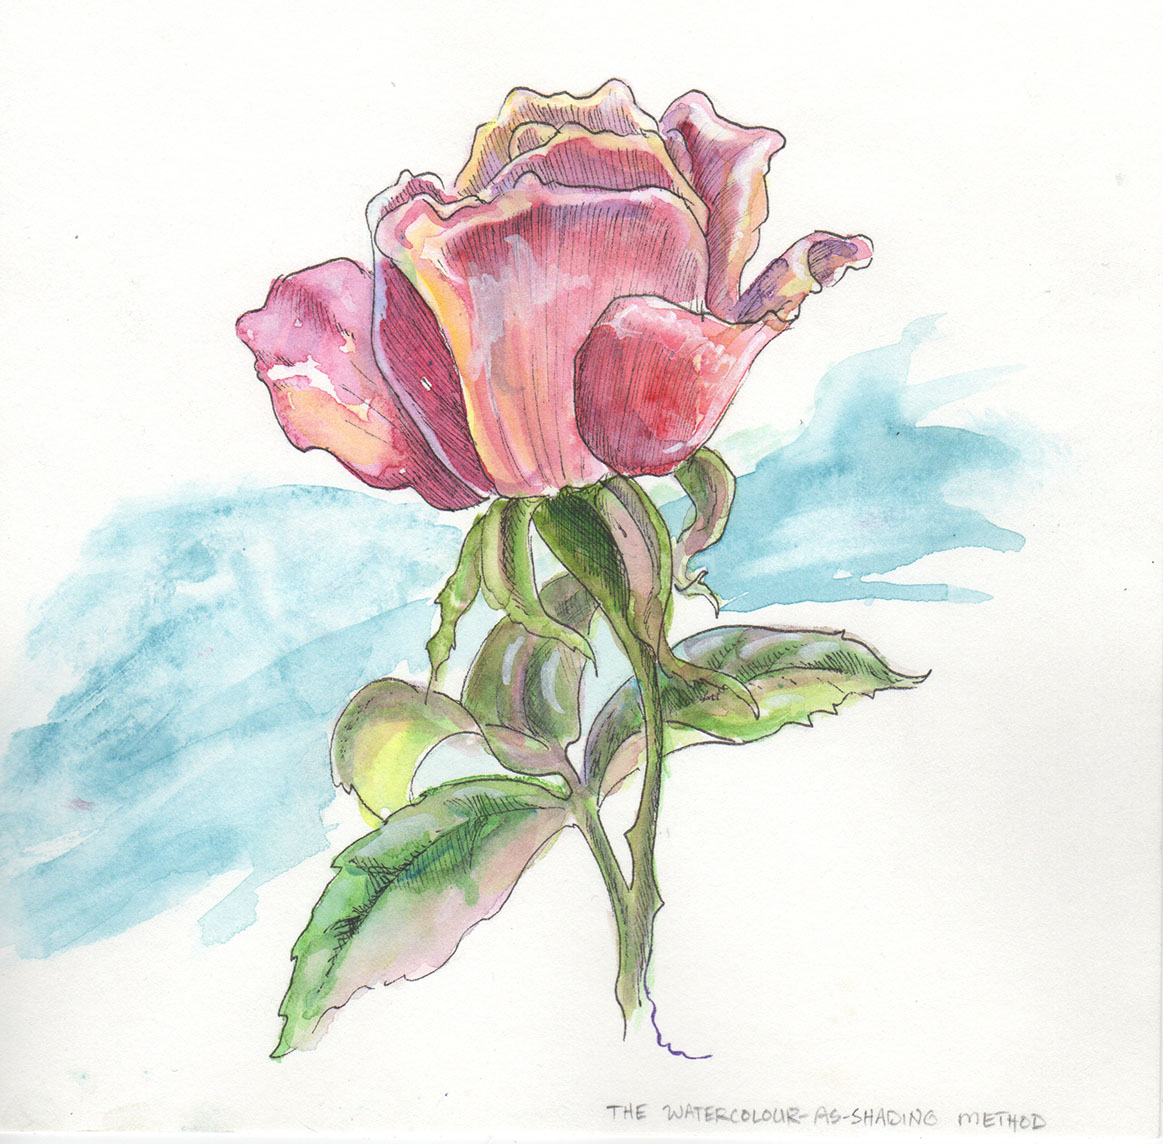 Drawn rose bush pen and ink And Combining  & used